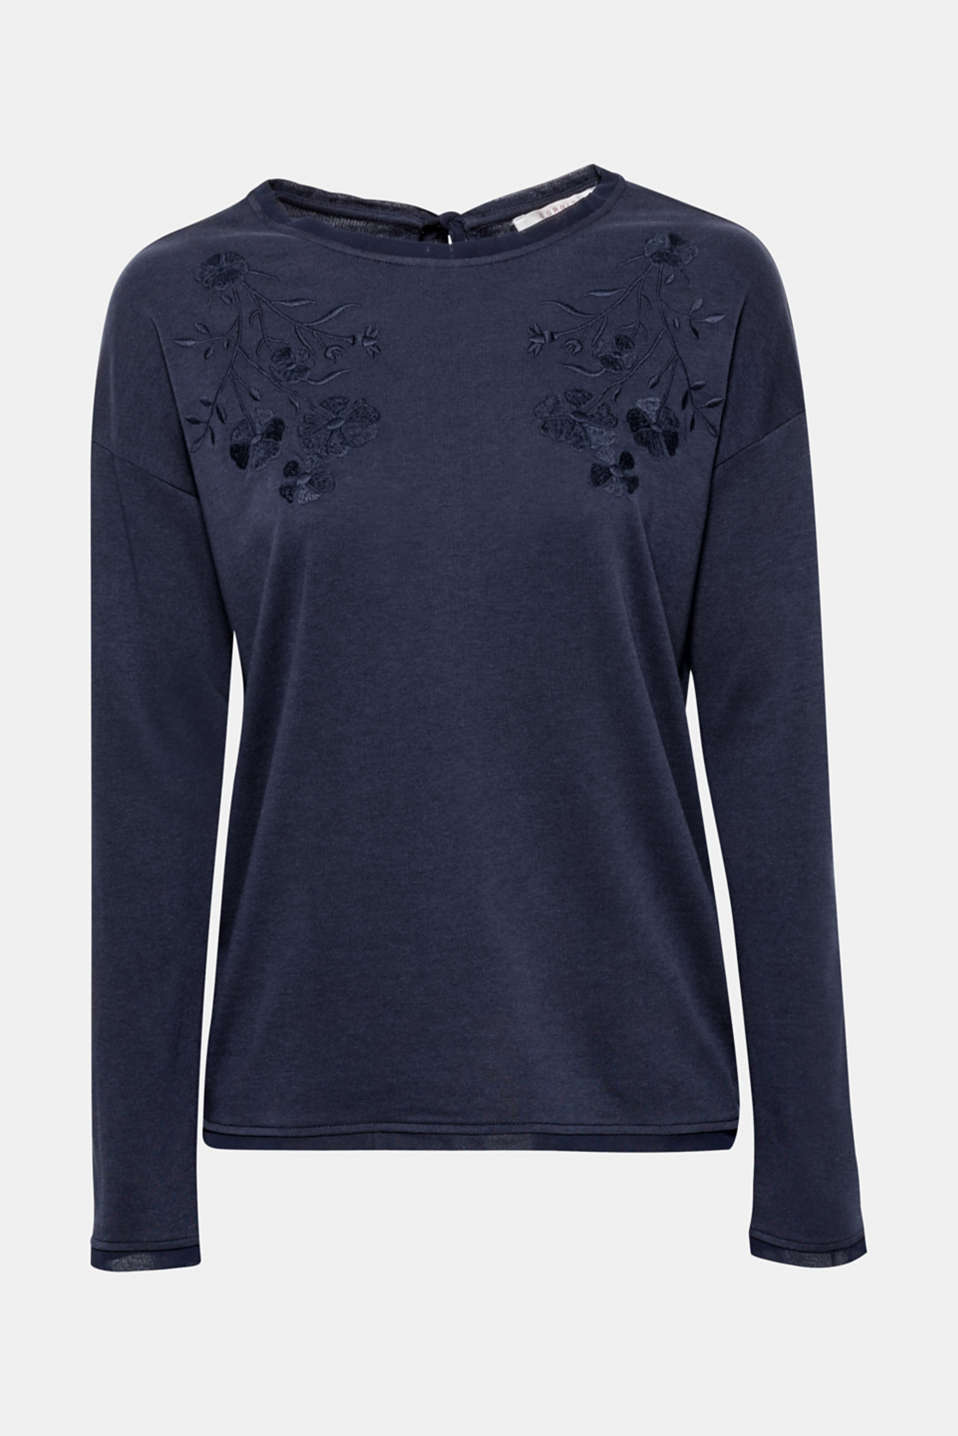 A casual fit with pretty details: The tonal embroidered underneath the neckline and dainty chiffon trims on the neckline, sleeves and hem give this long sleeve top its feminine flair!